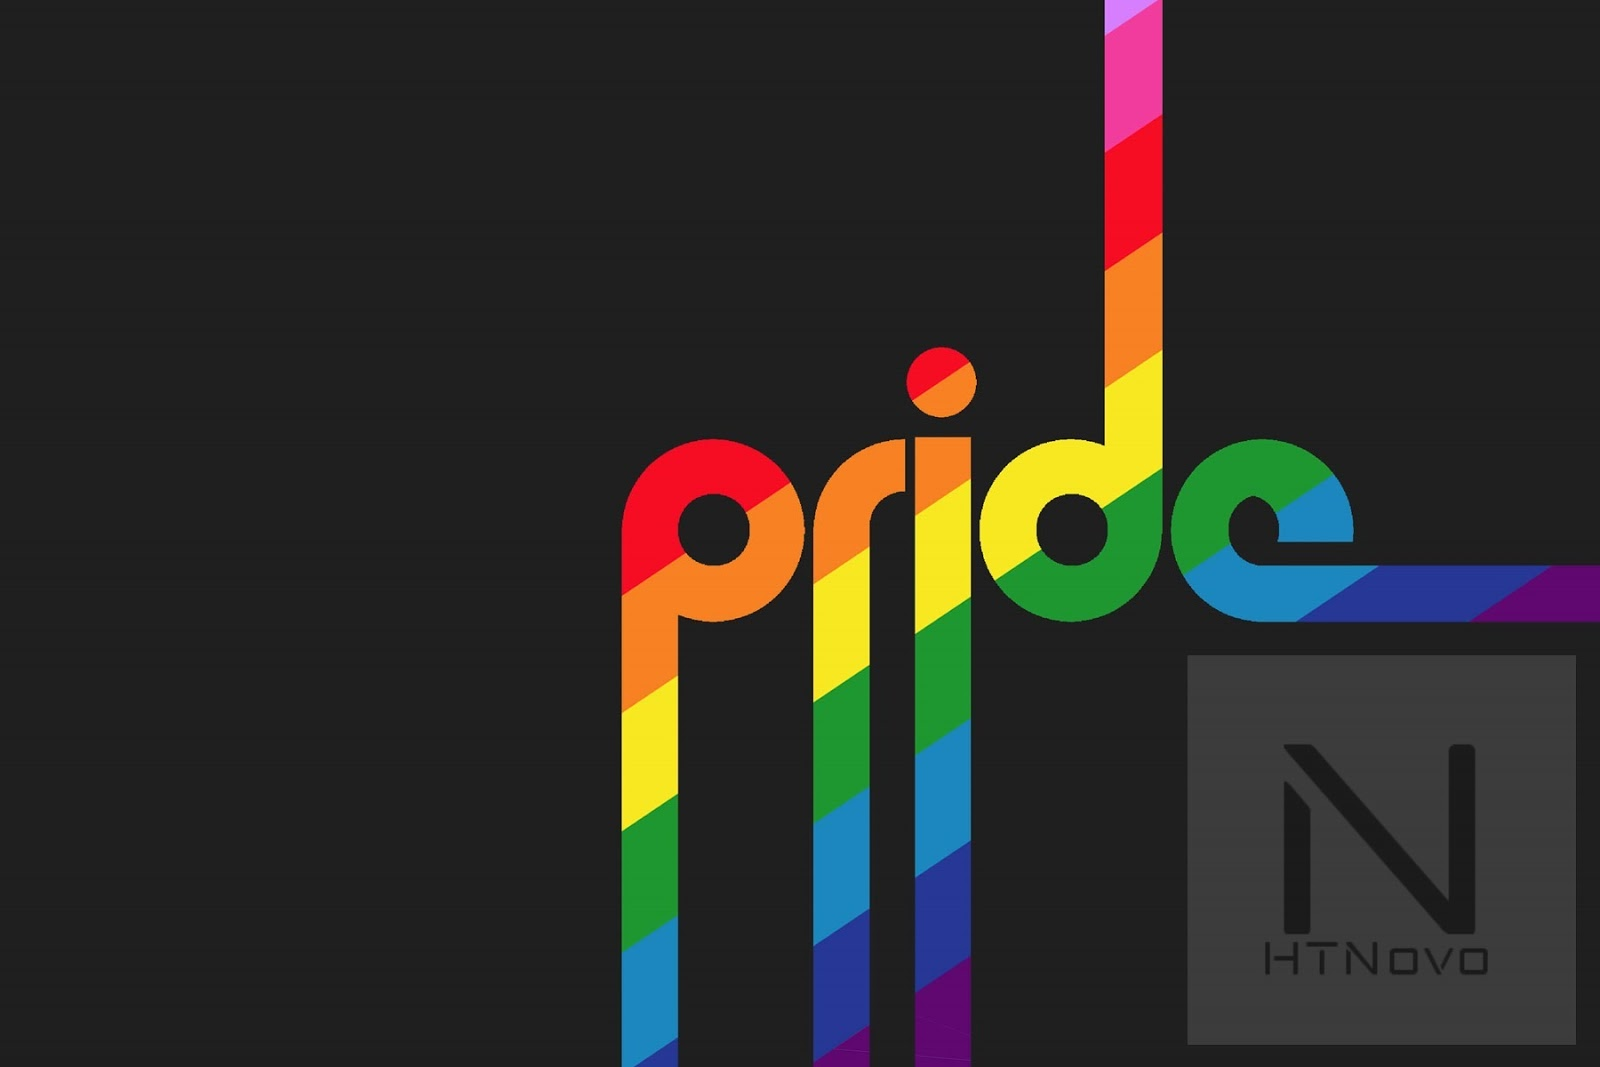 Sfondi-Pride-Download